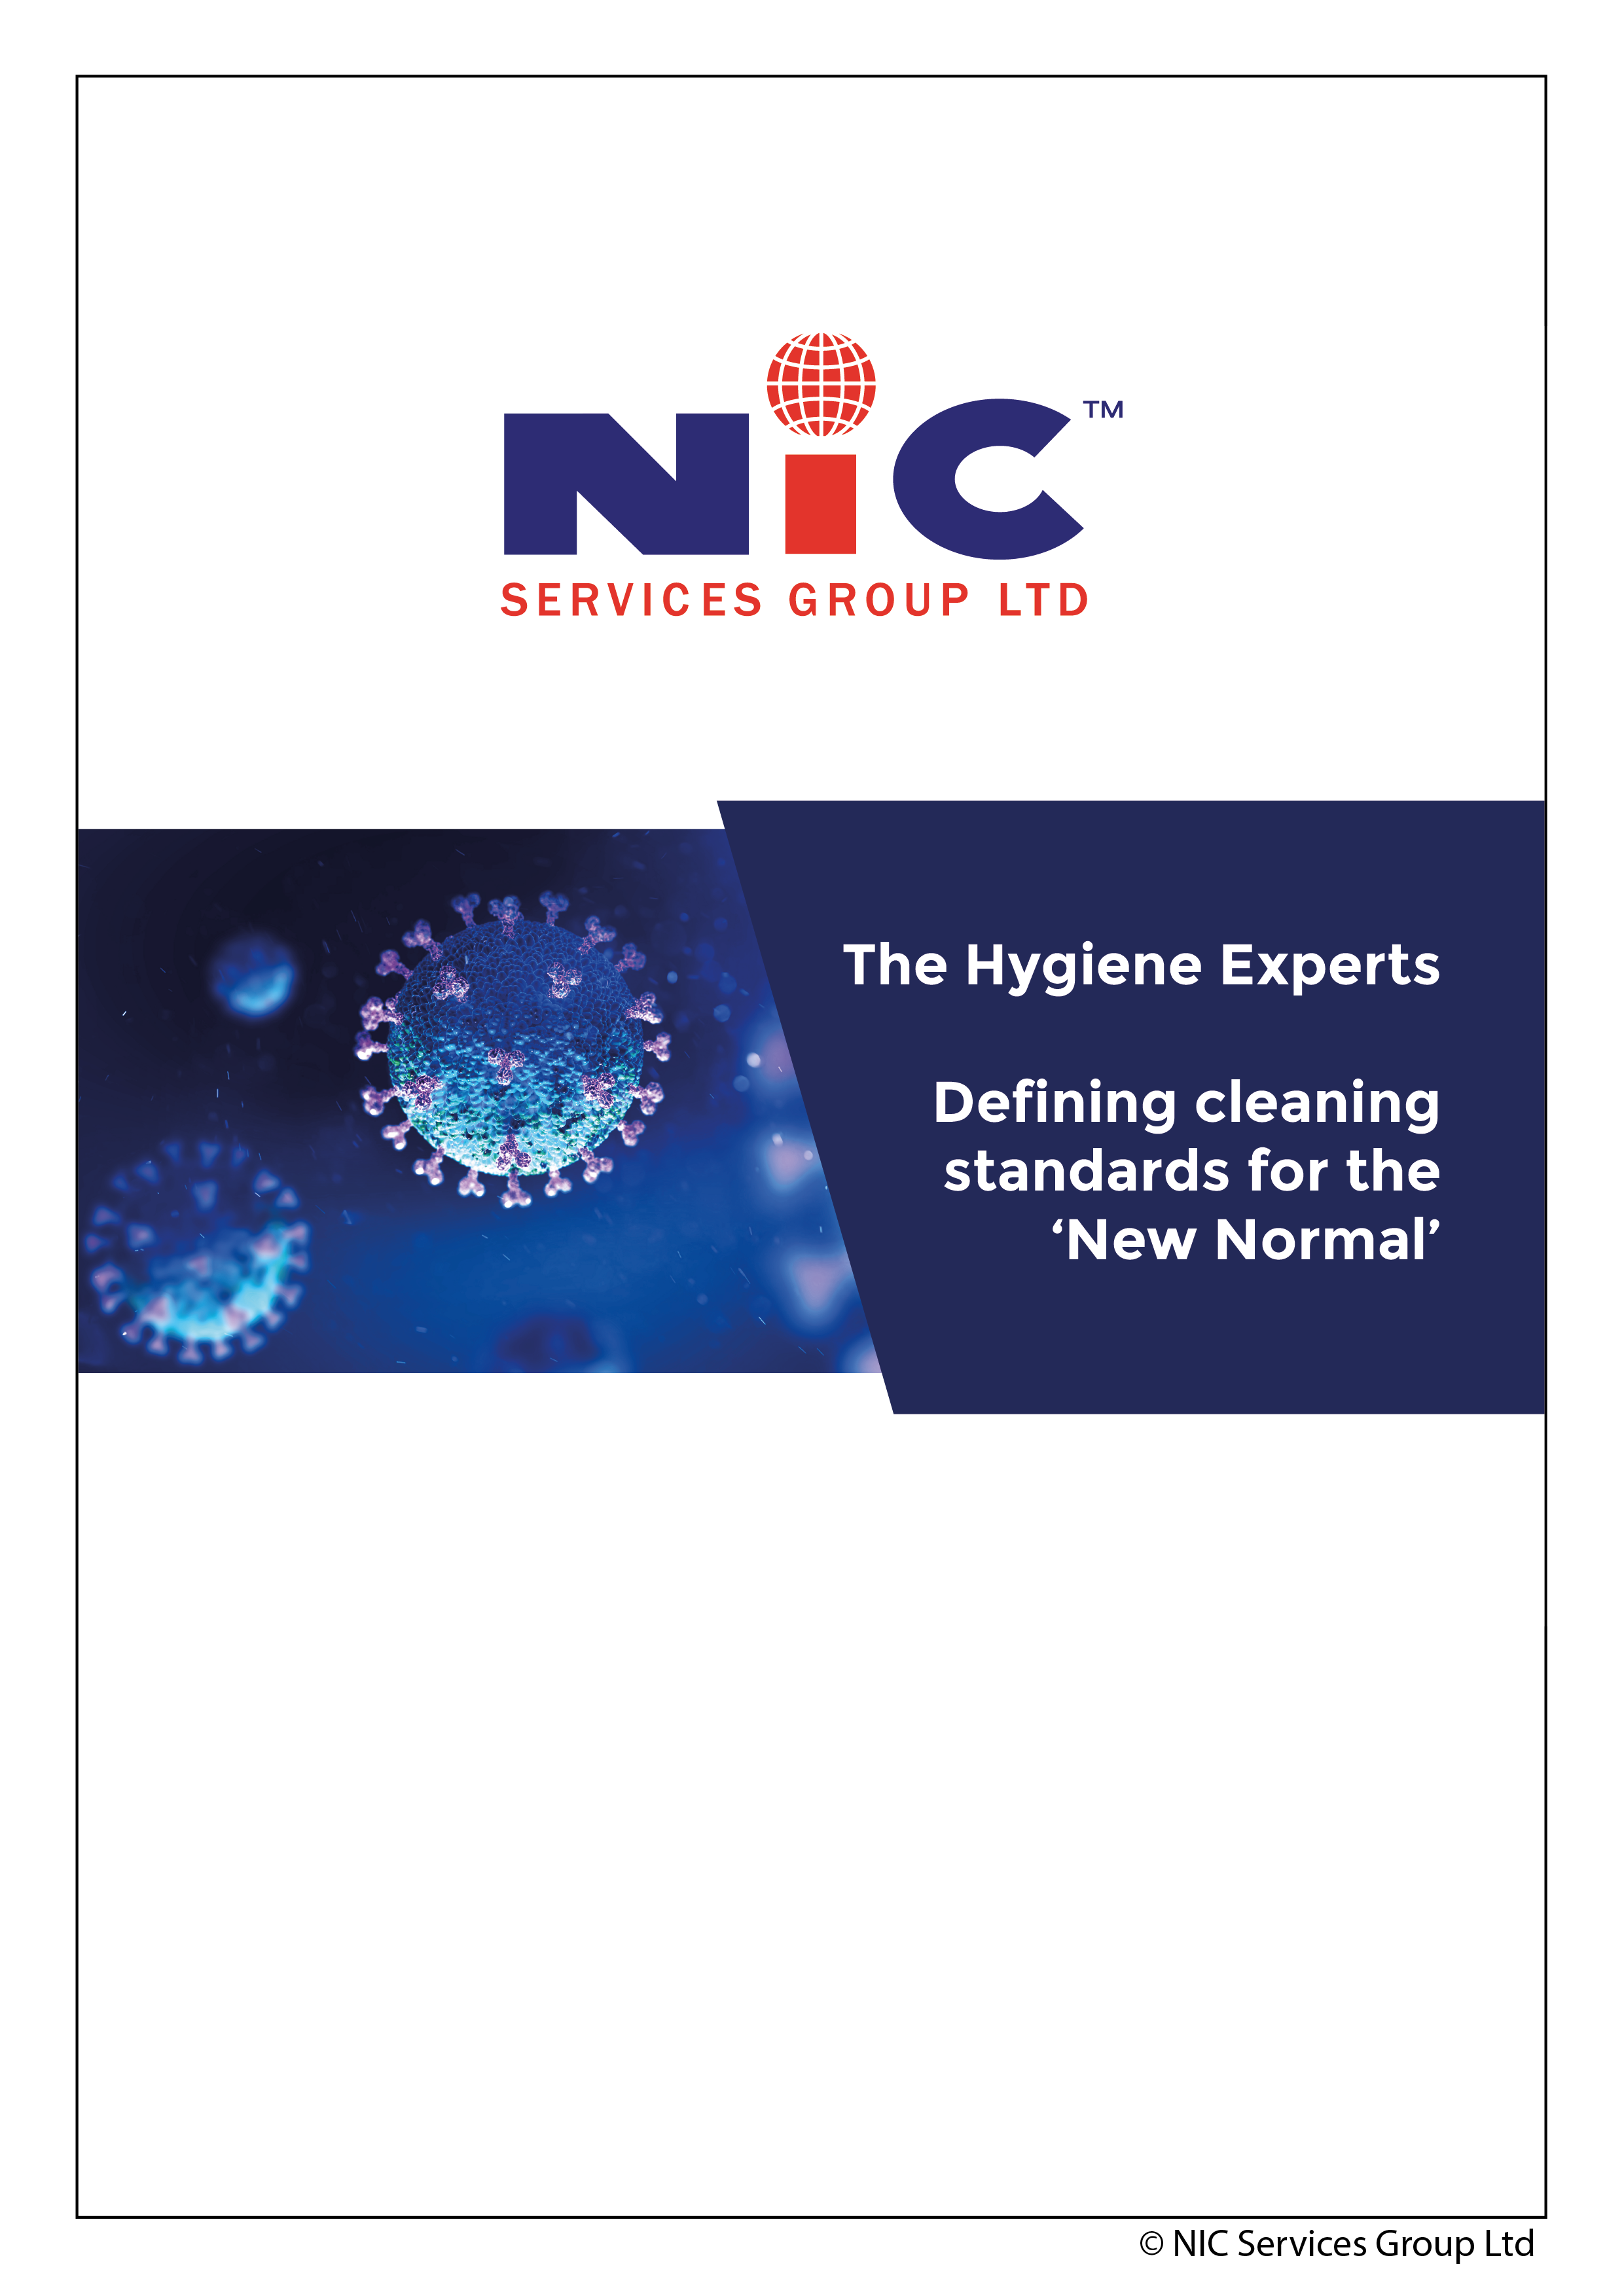 Hygie-NIC – Complete guide to defining cleaning standards for the 'New Normal'